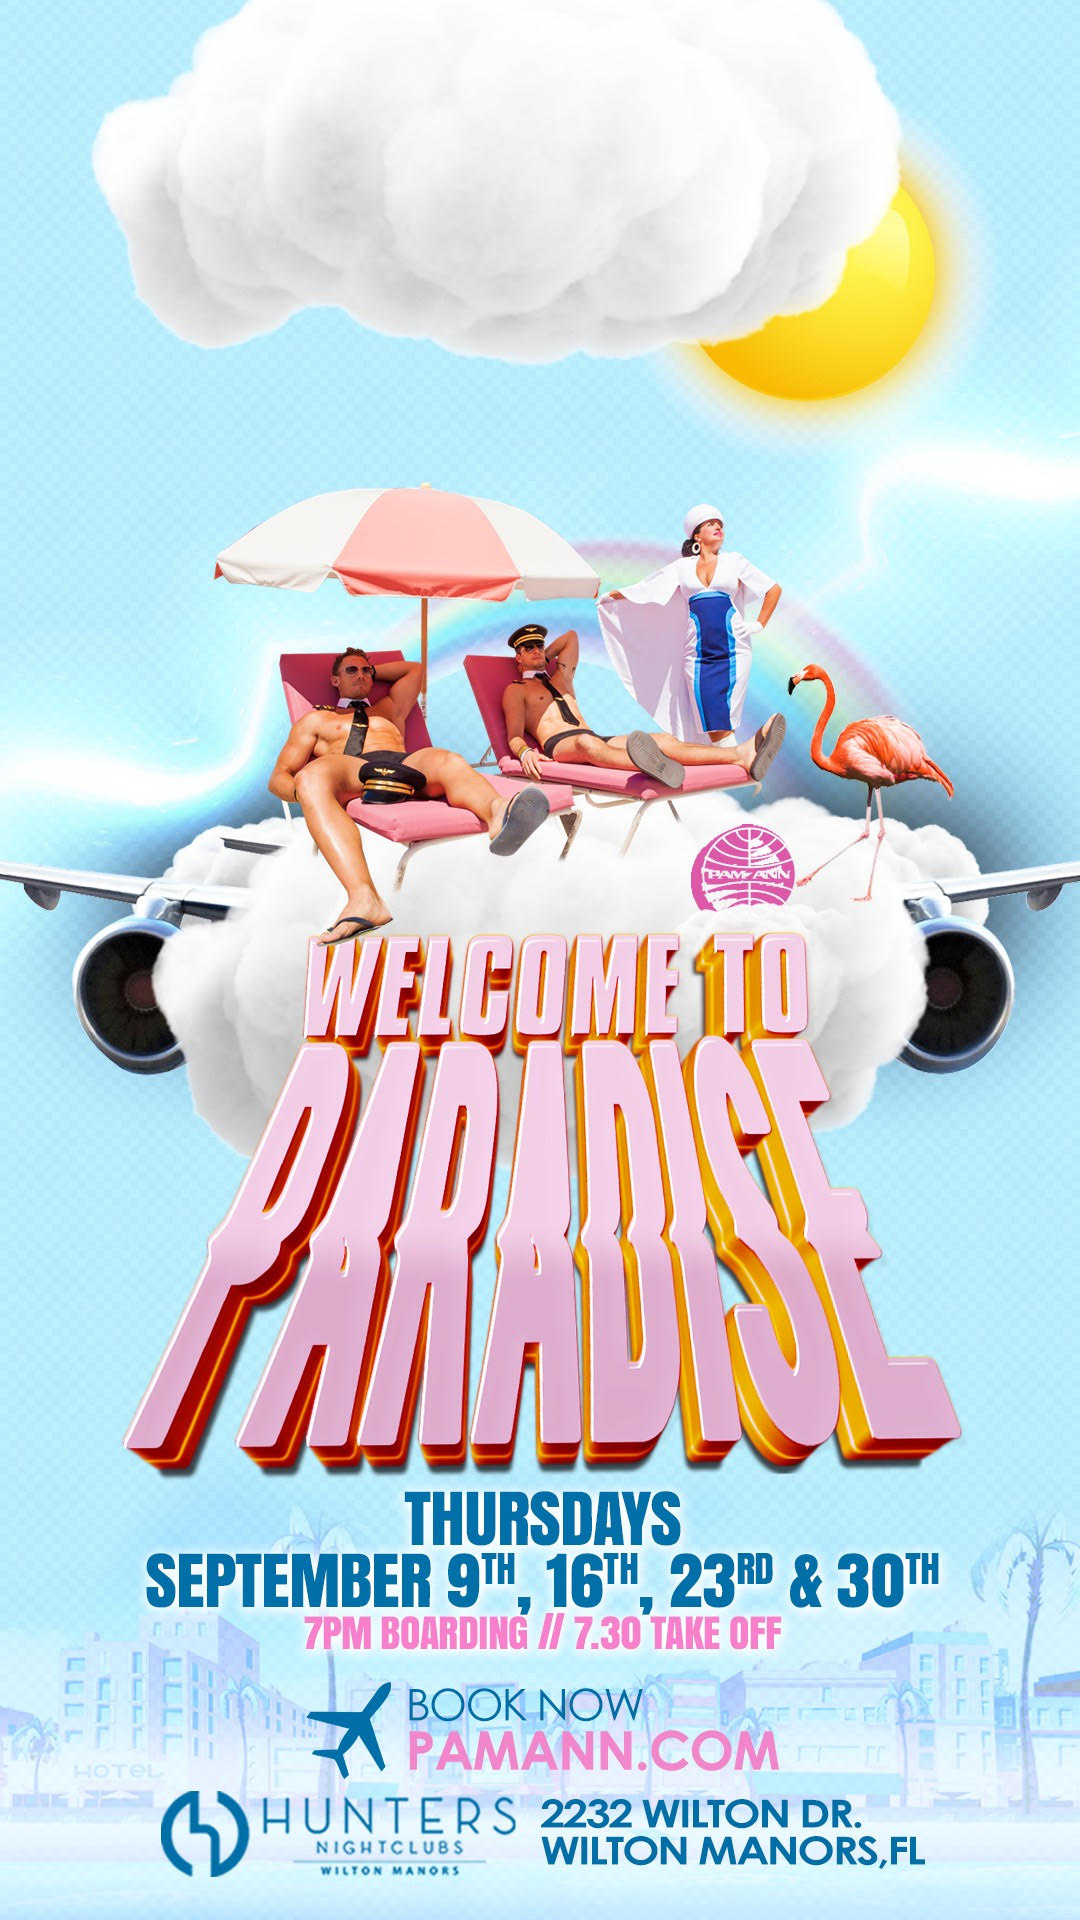 Welcome to Paradise - Thursdays September 9,16,23, and 30.